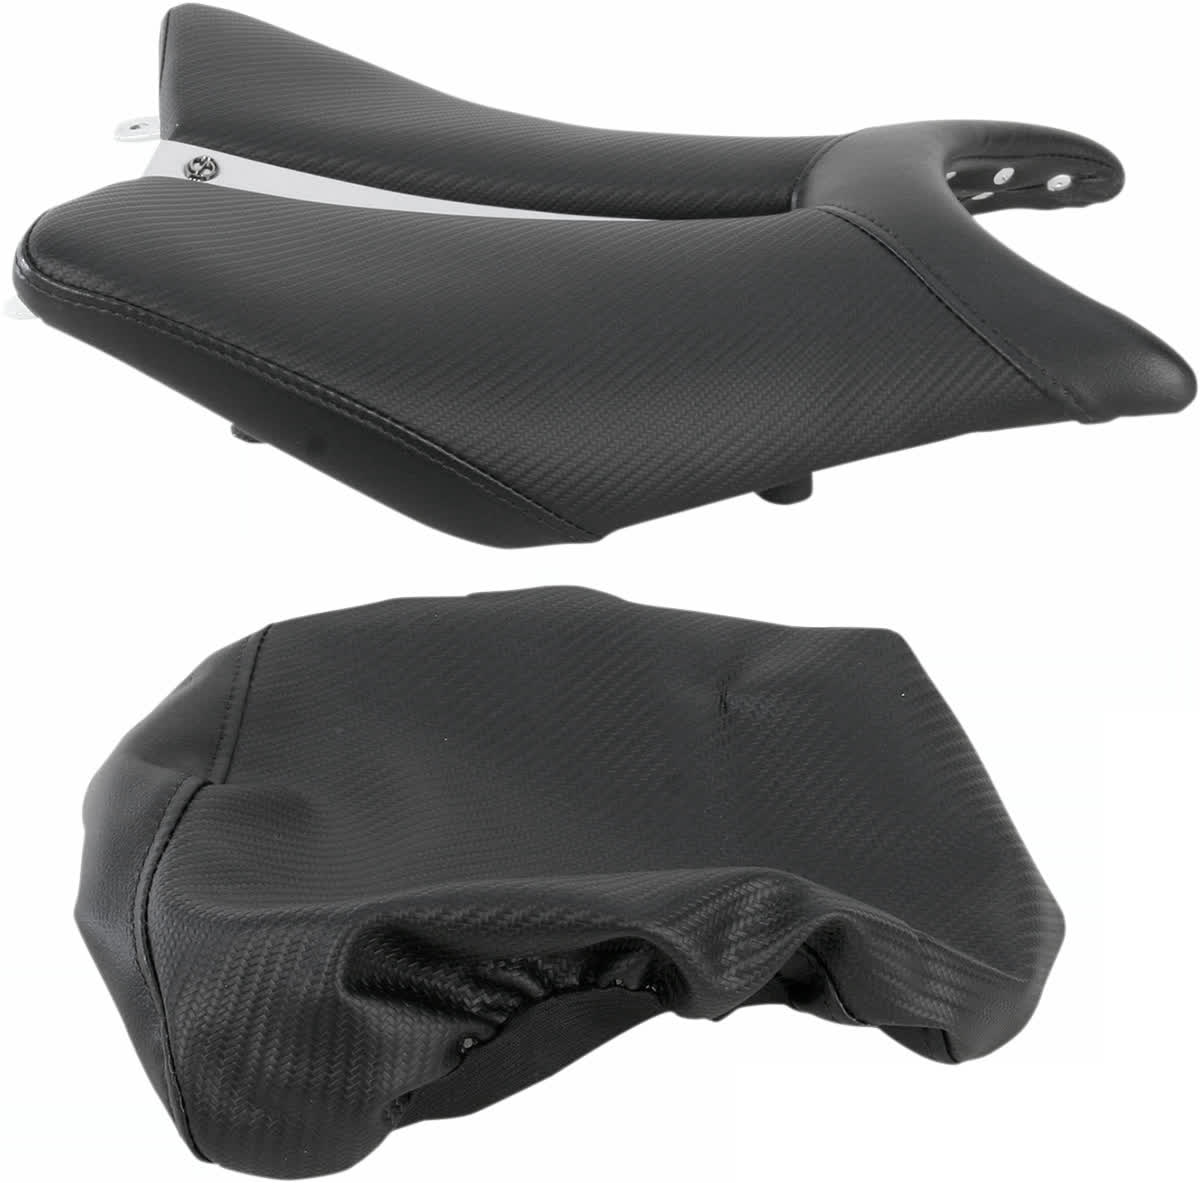 Saddlemen 0810-H016 Gel-Channel Track One-Piece Solo Seat with Rear Cover